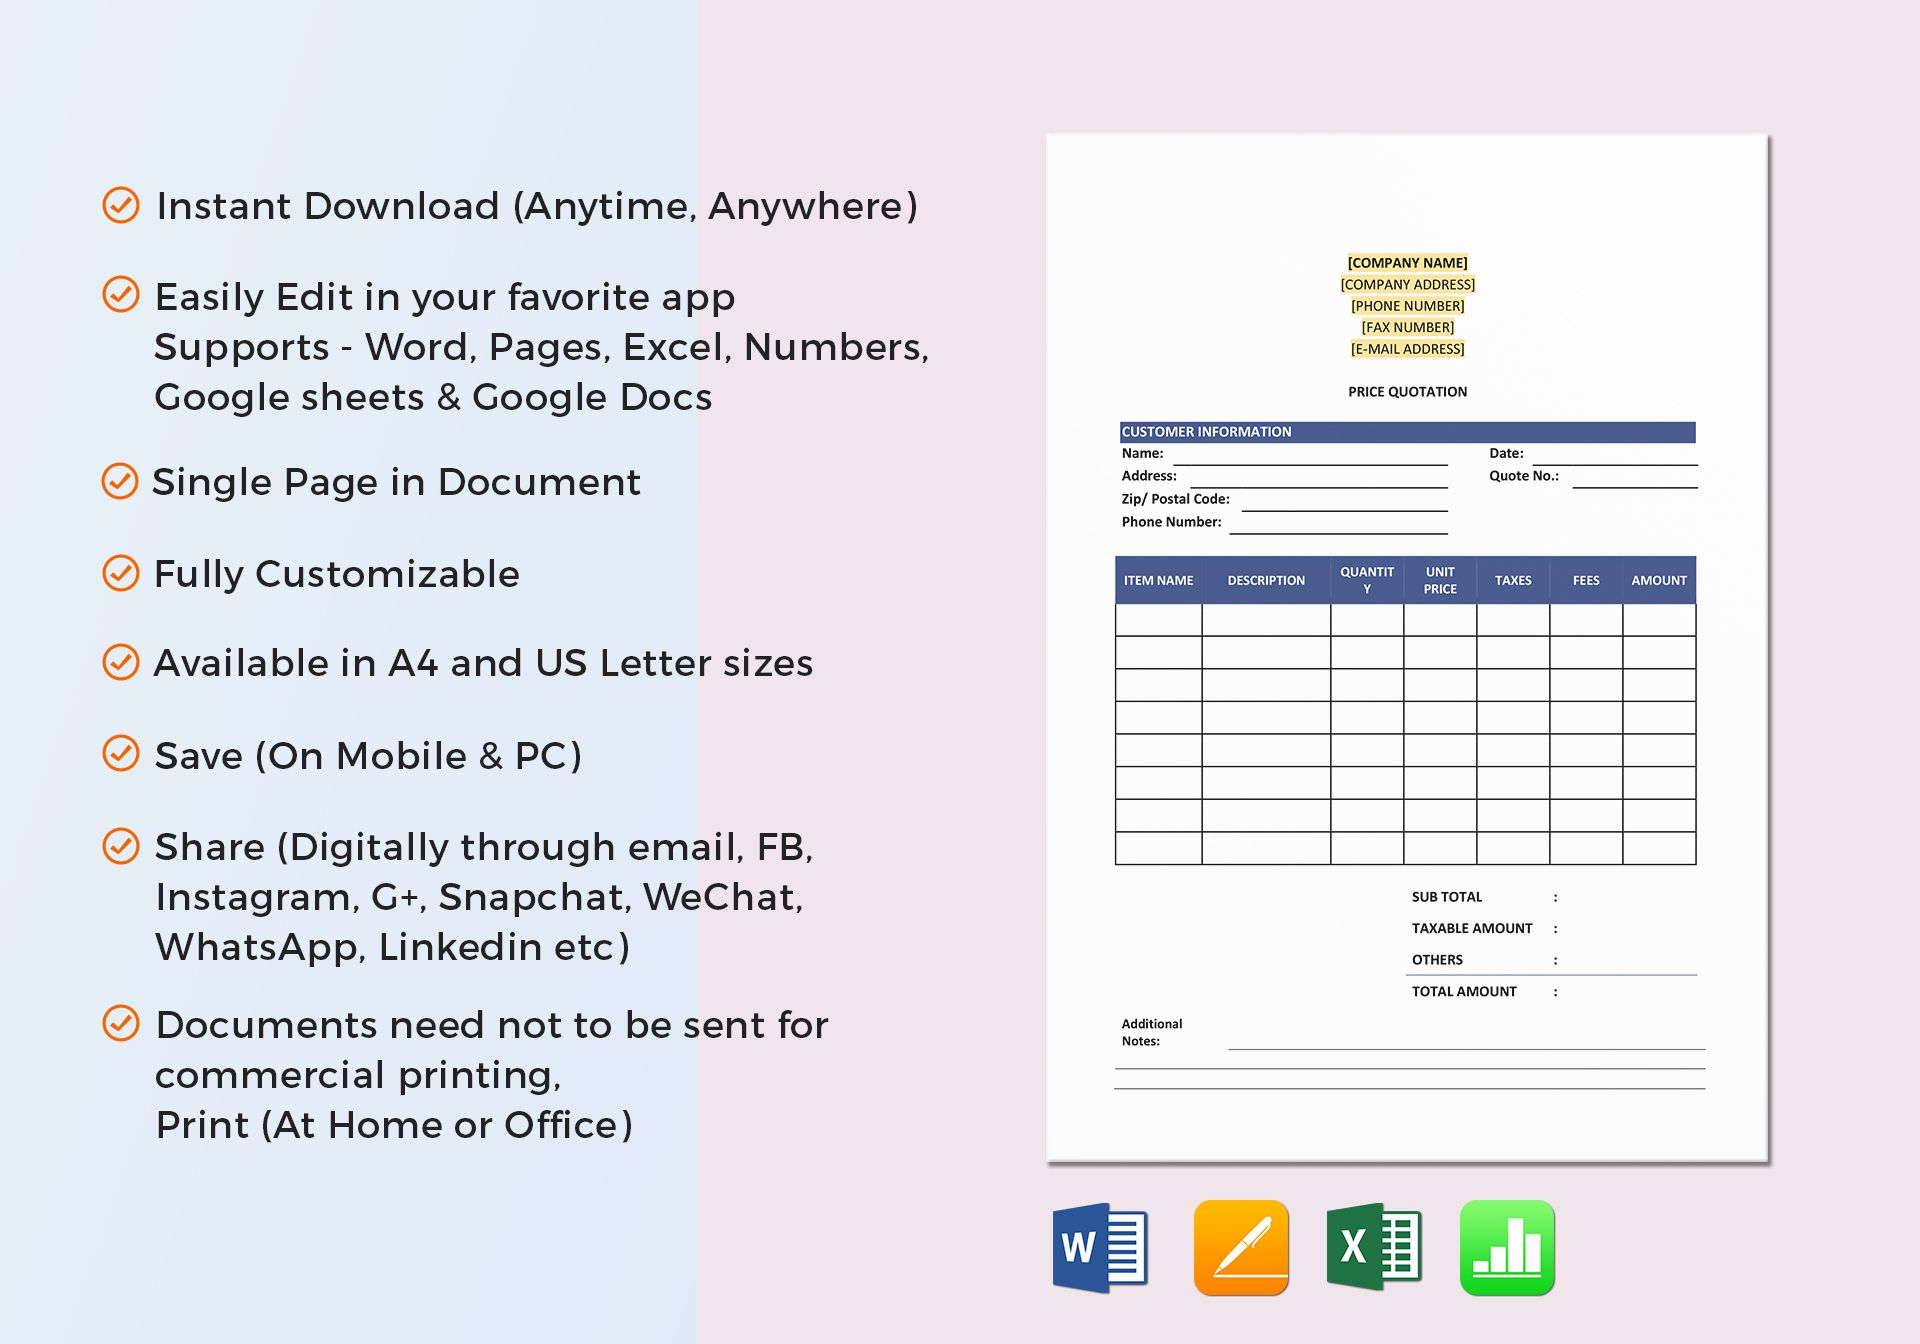 Purchase Order Template In Word Excel Docs Apple